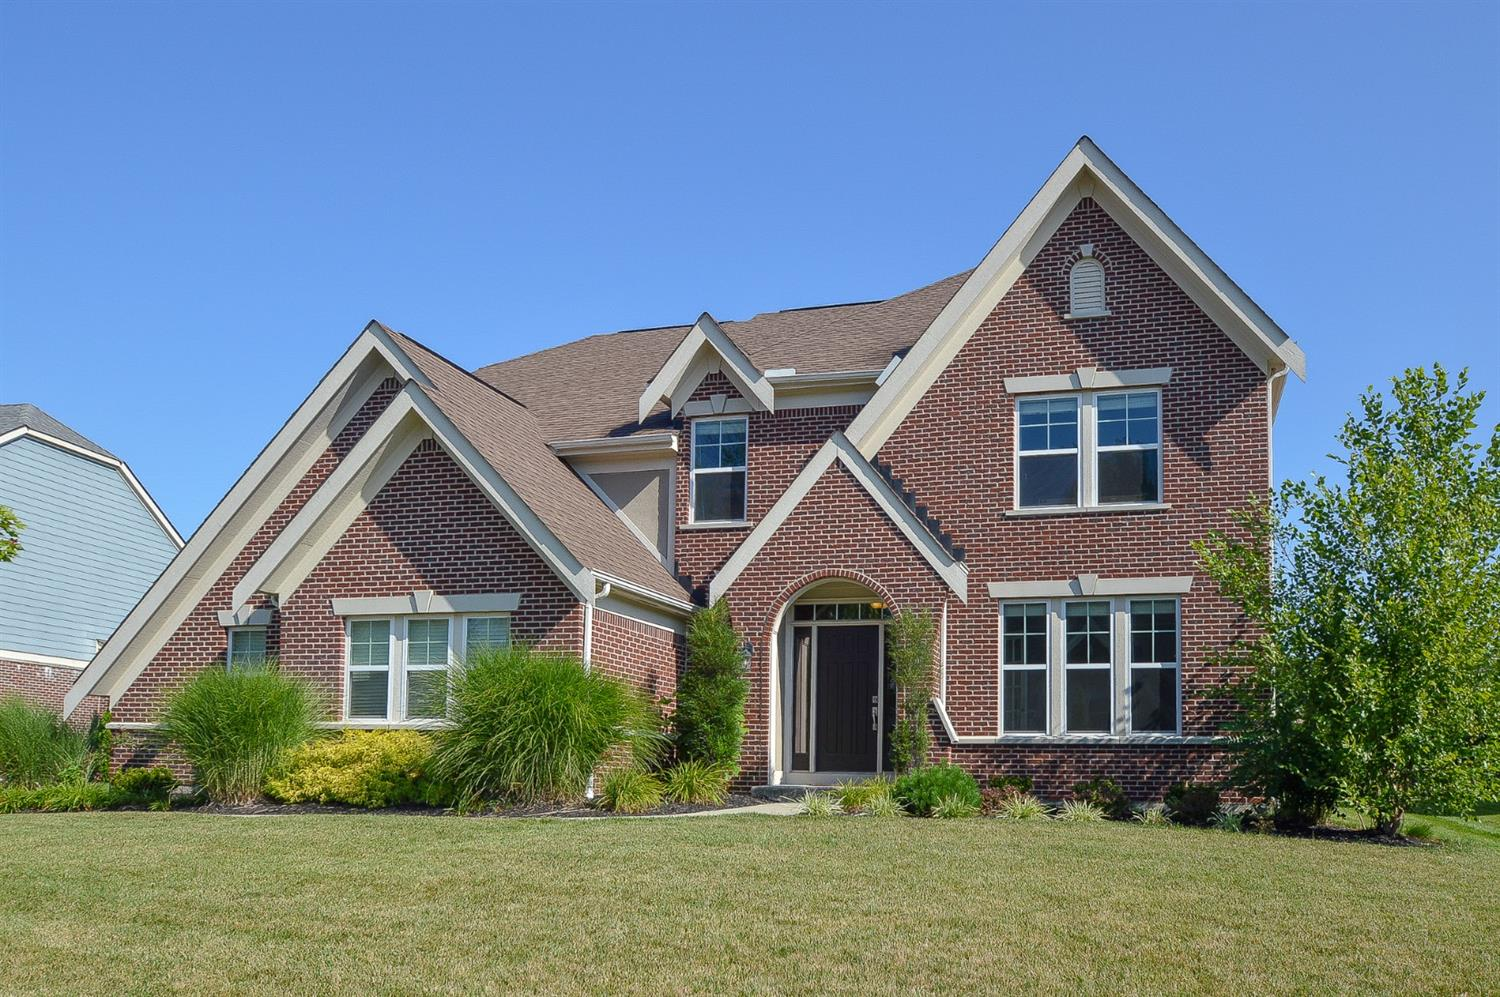 Property for sale at 1646 Bluffton Terrace Drive, Hamilton Twp,  Ohio 45039